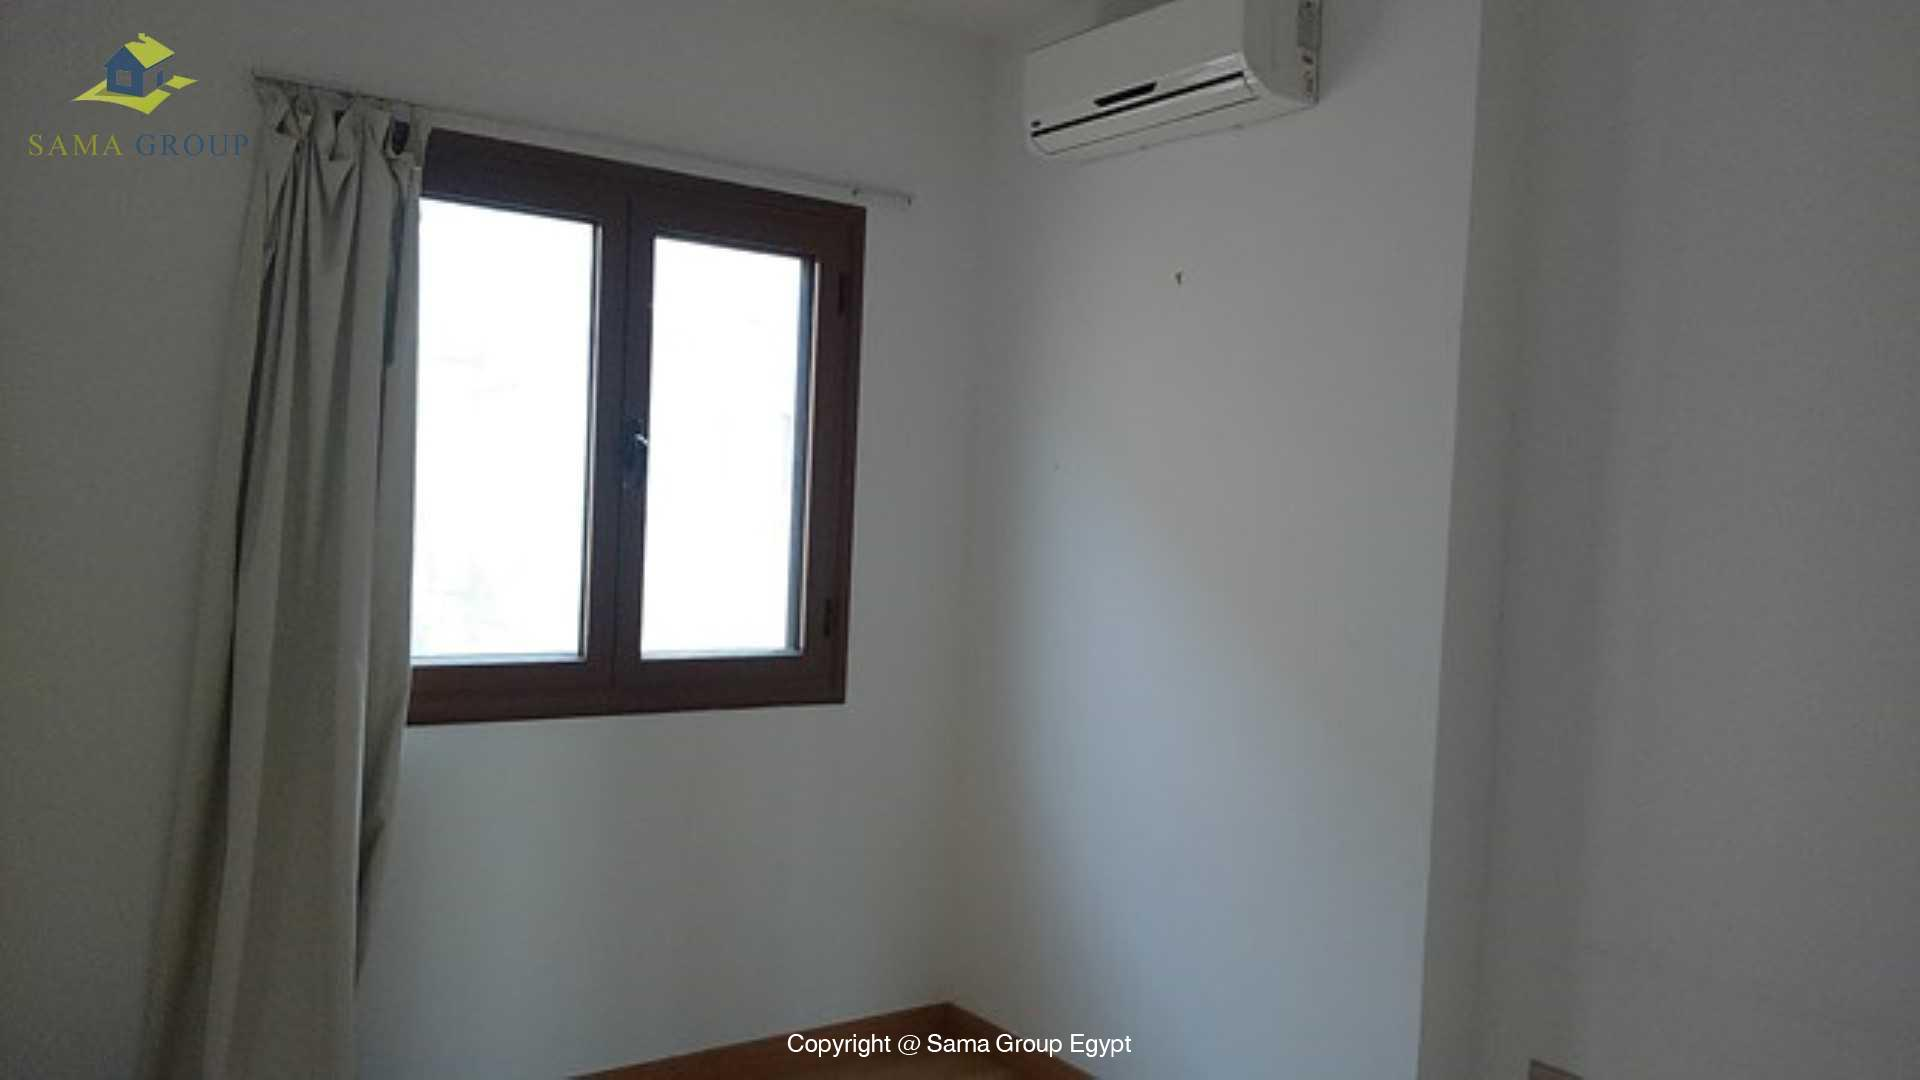 Penthouse with Swimming Pool For Rent In Maadi,Semi furnished,Penthouse NO #5